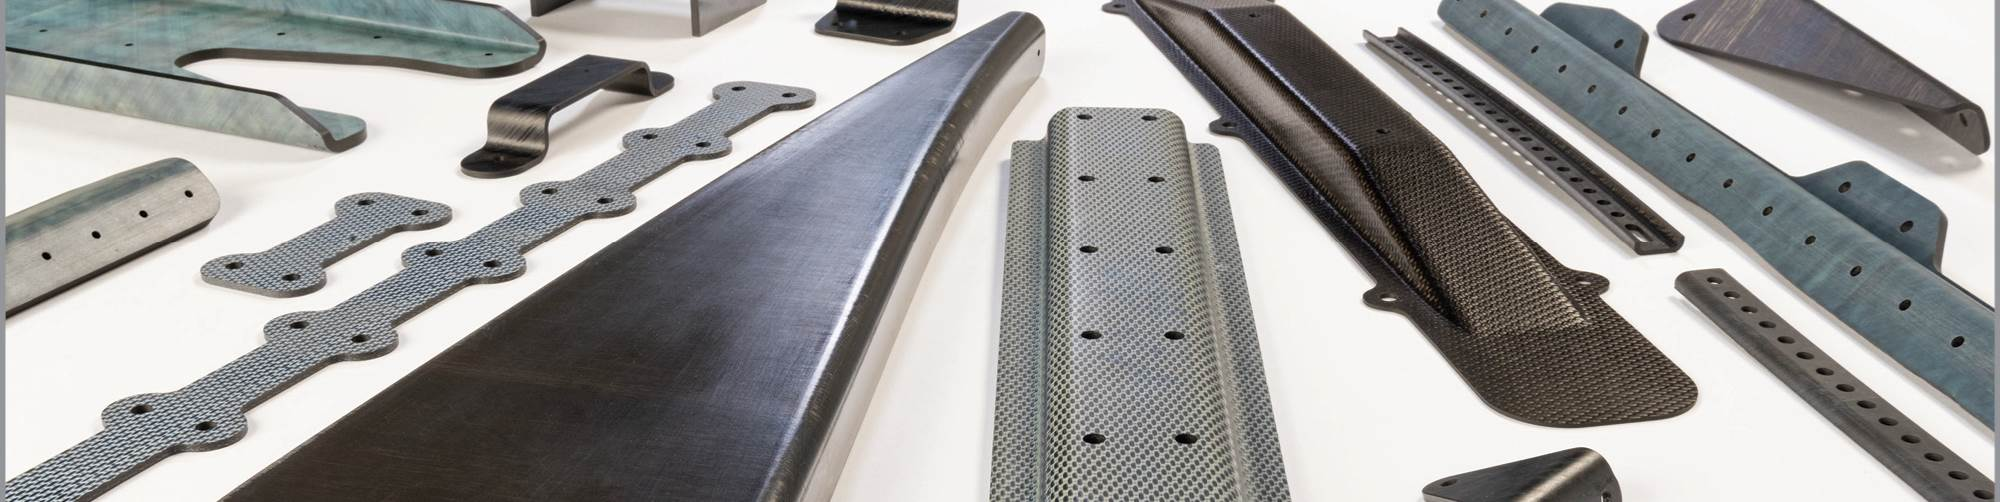 Tooling technologies positioned for speed, control